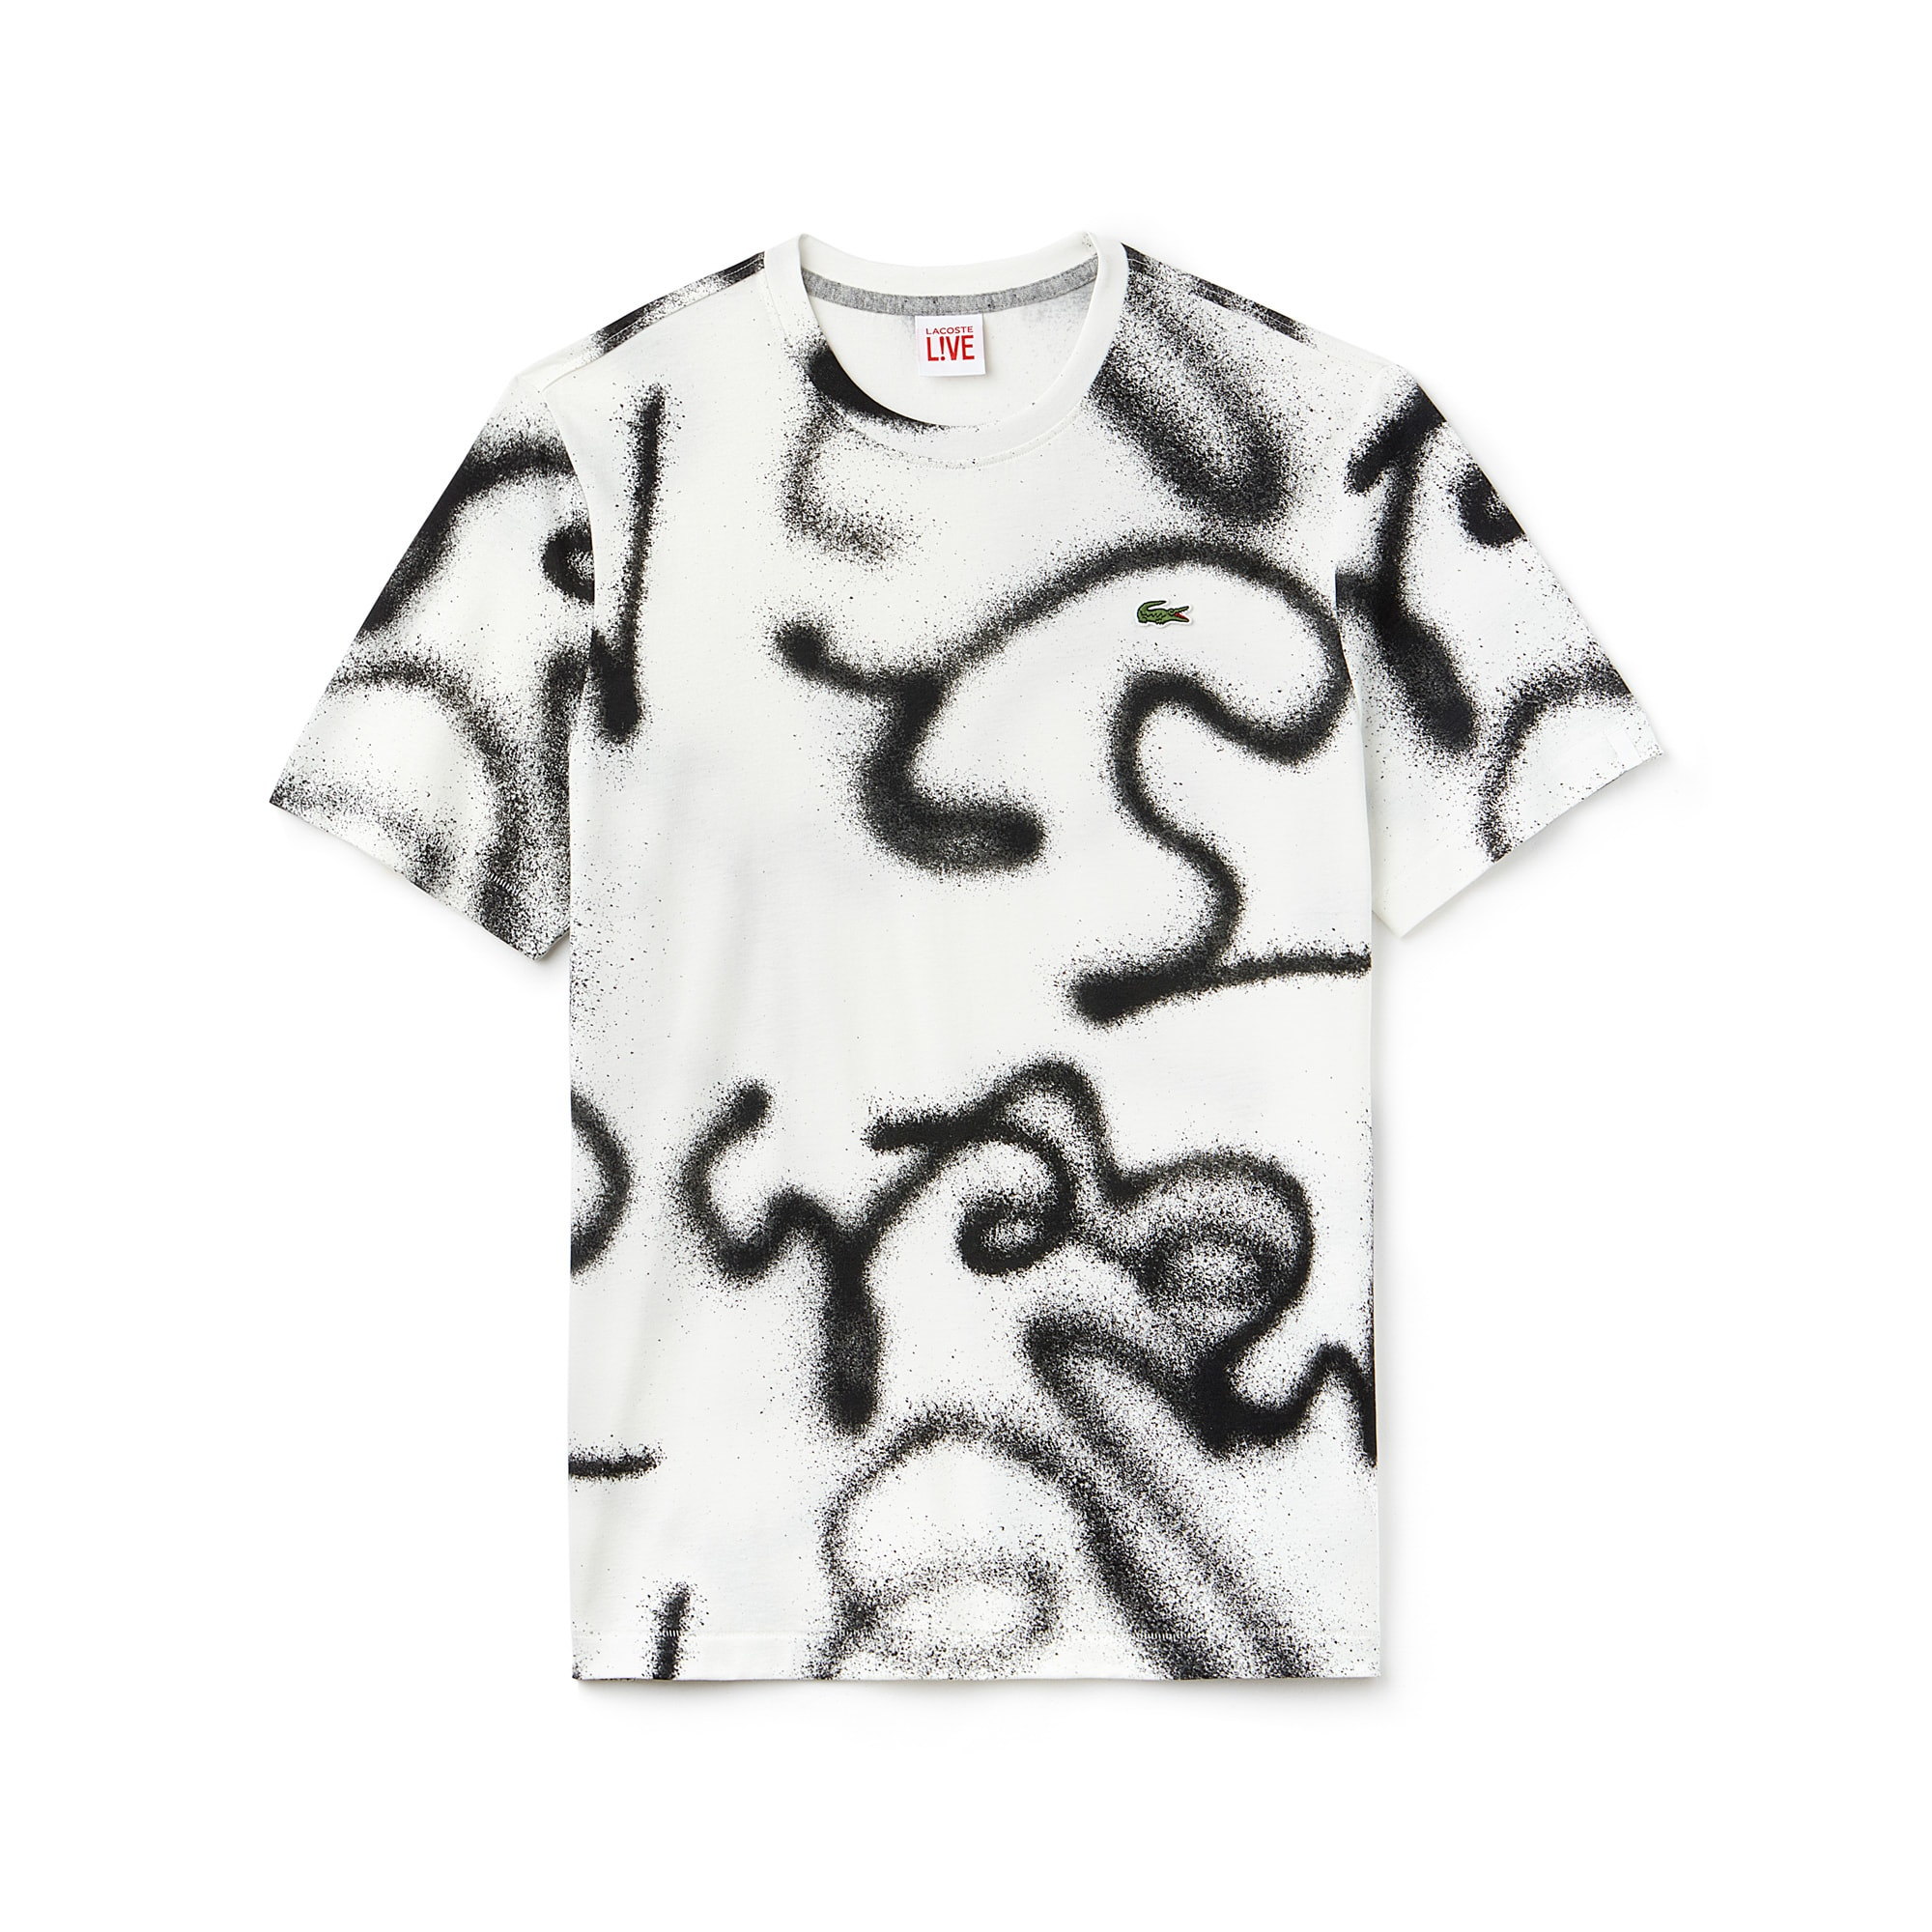 Men's LIVE Graffiti Print T-Shirt